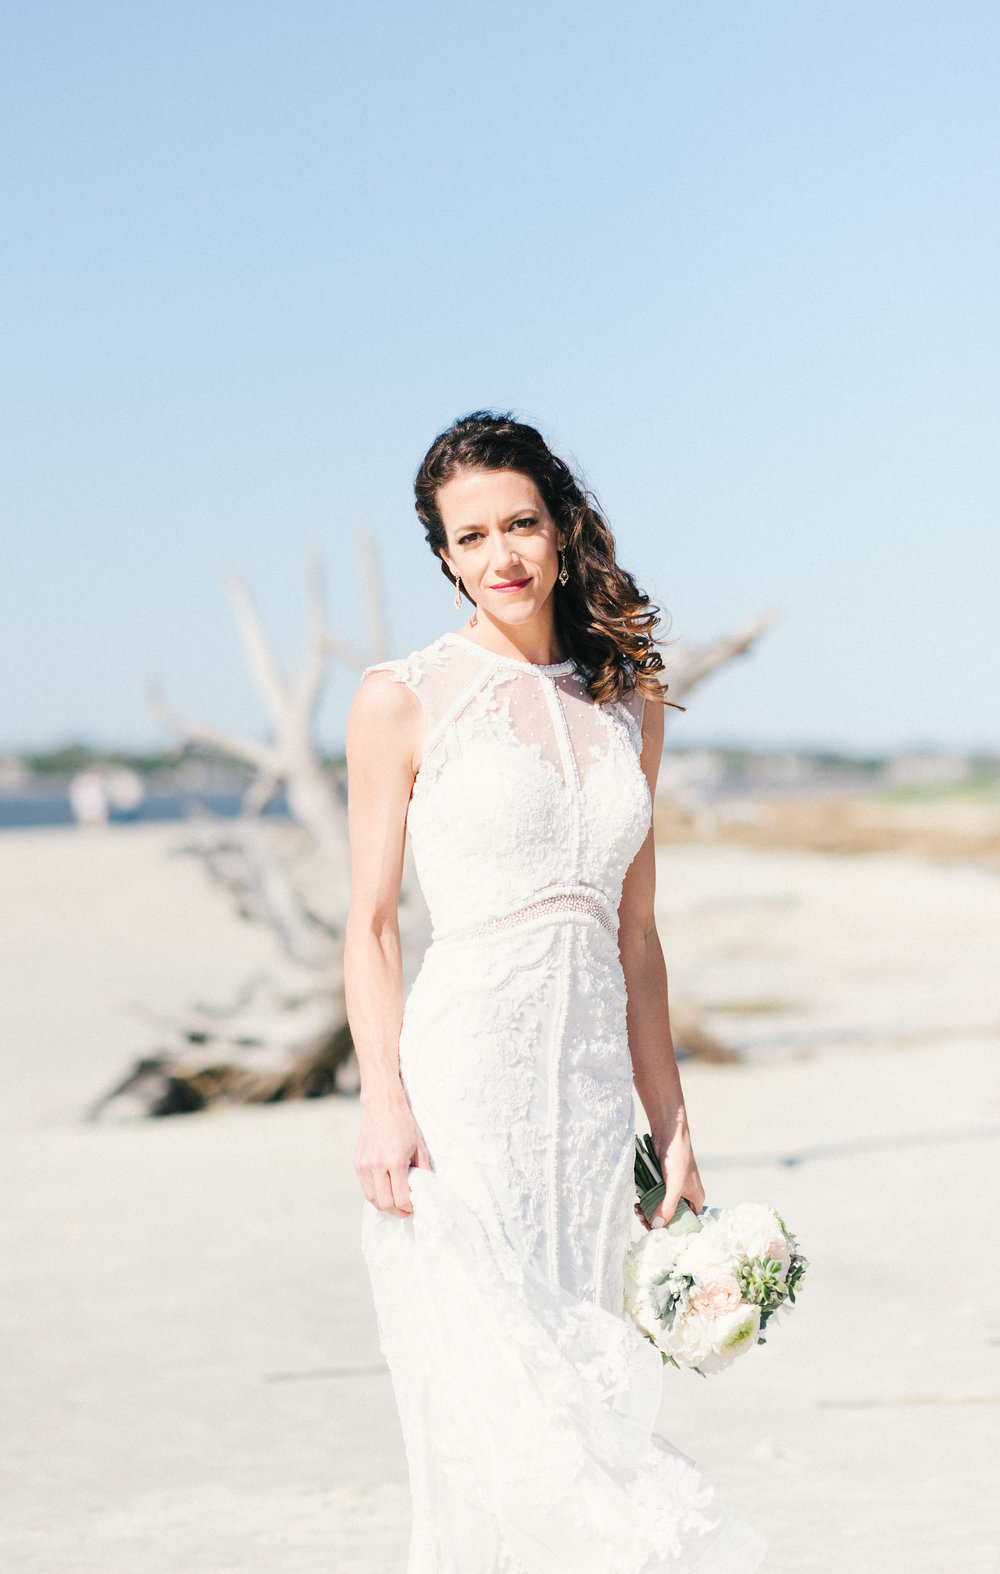 Bride at Driftwood beach on Jekyll Island, GA by Meghan Newsome Photography